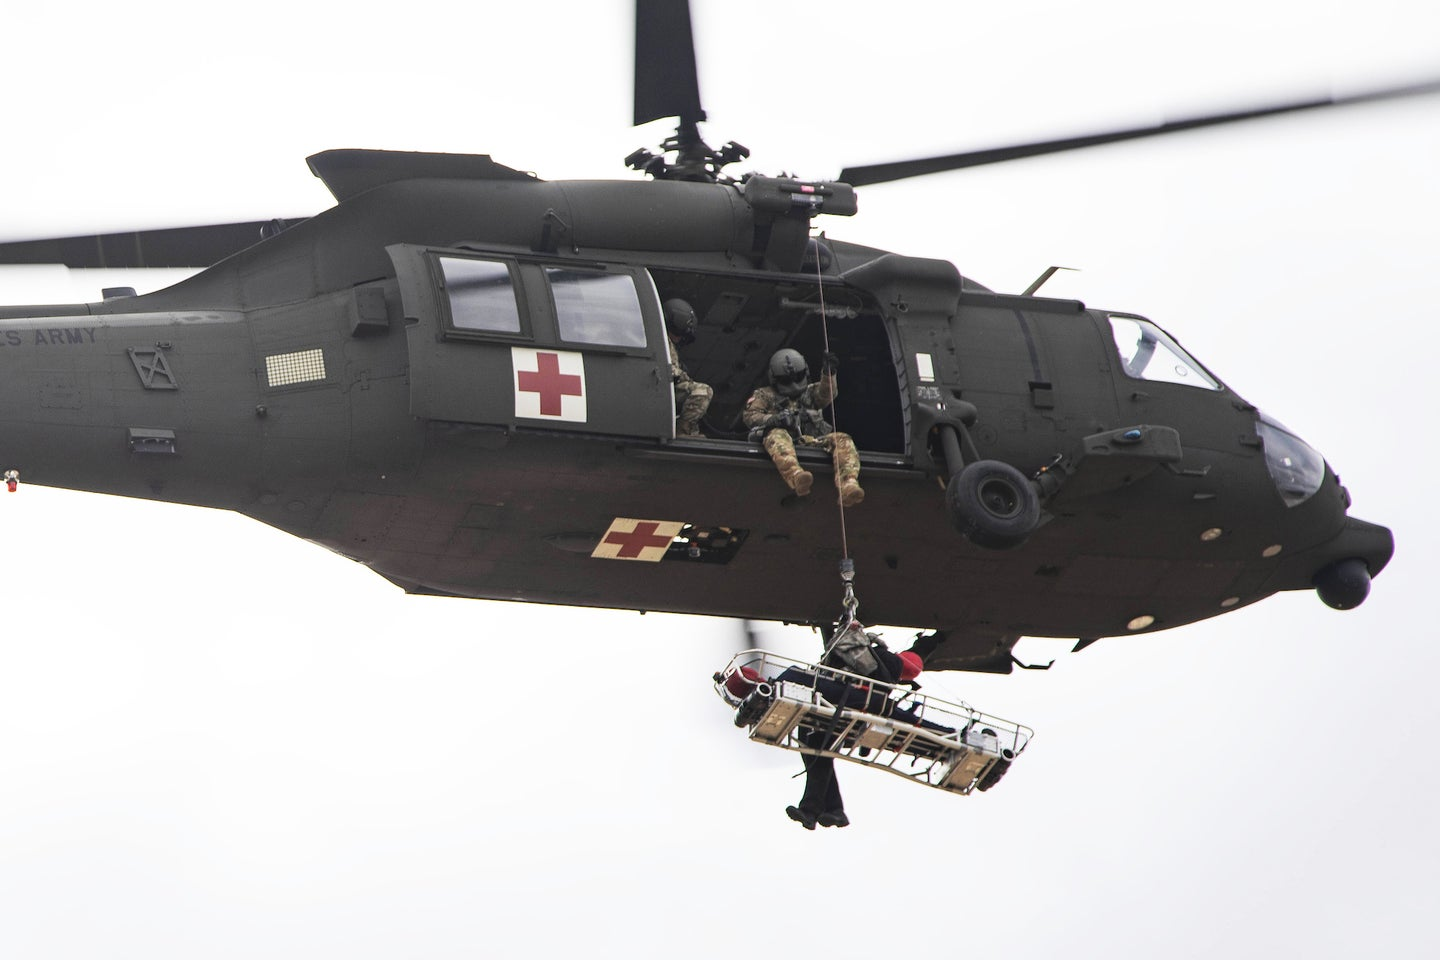 A Black Hawk helicopter with a rescue basket beneath it.